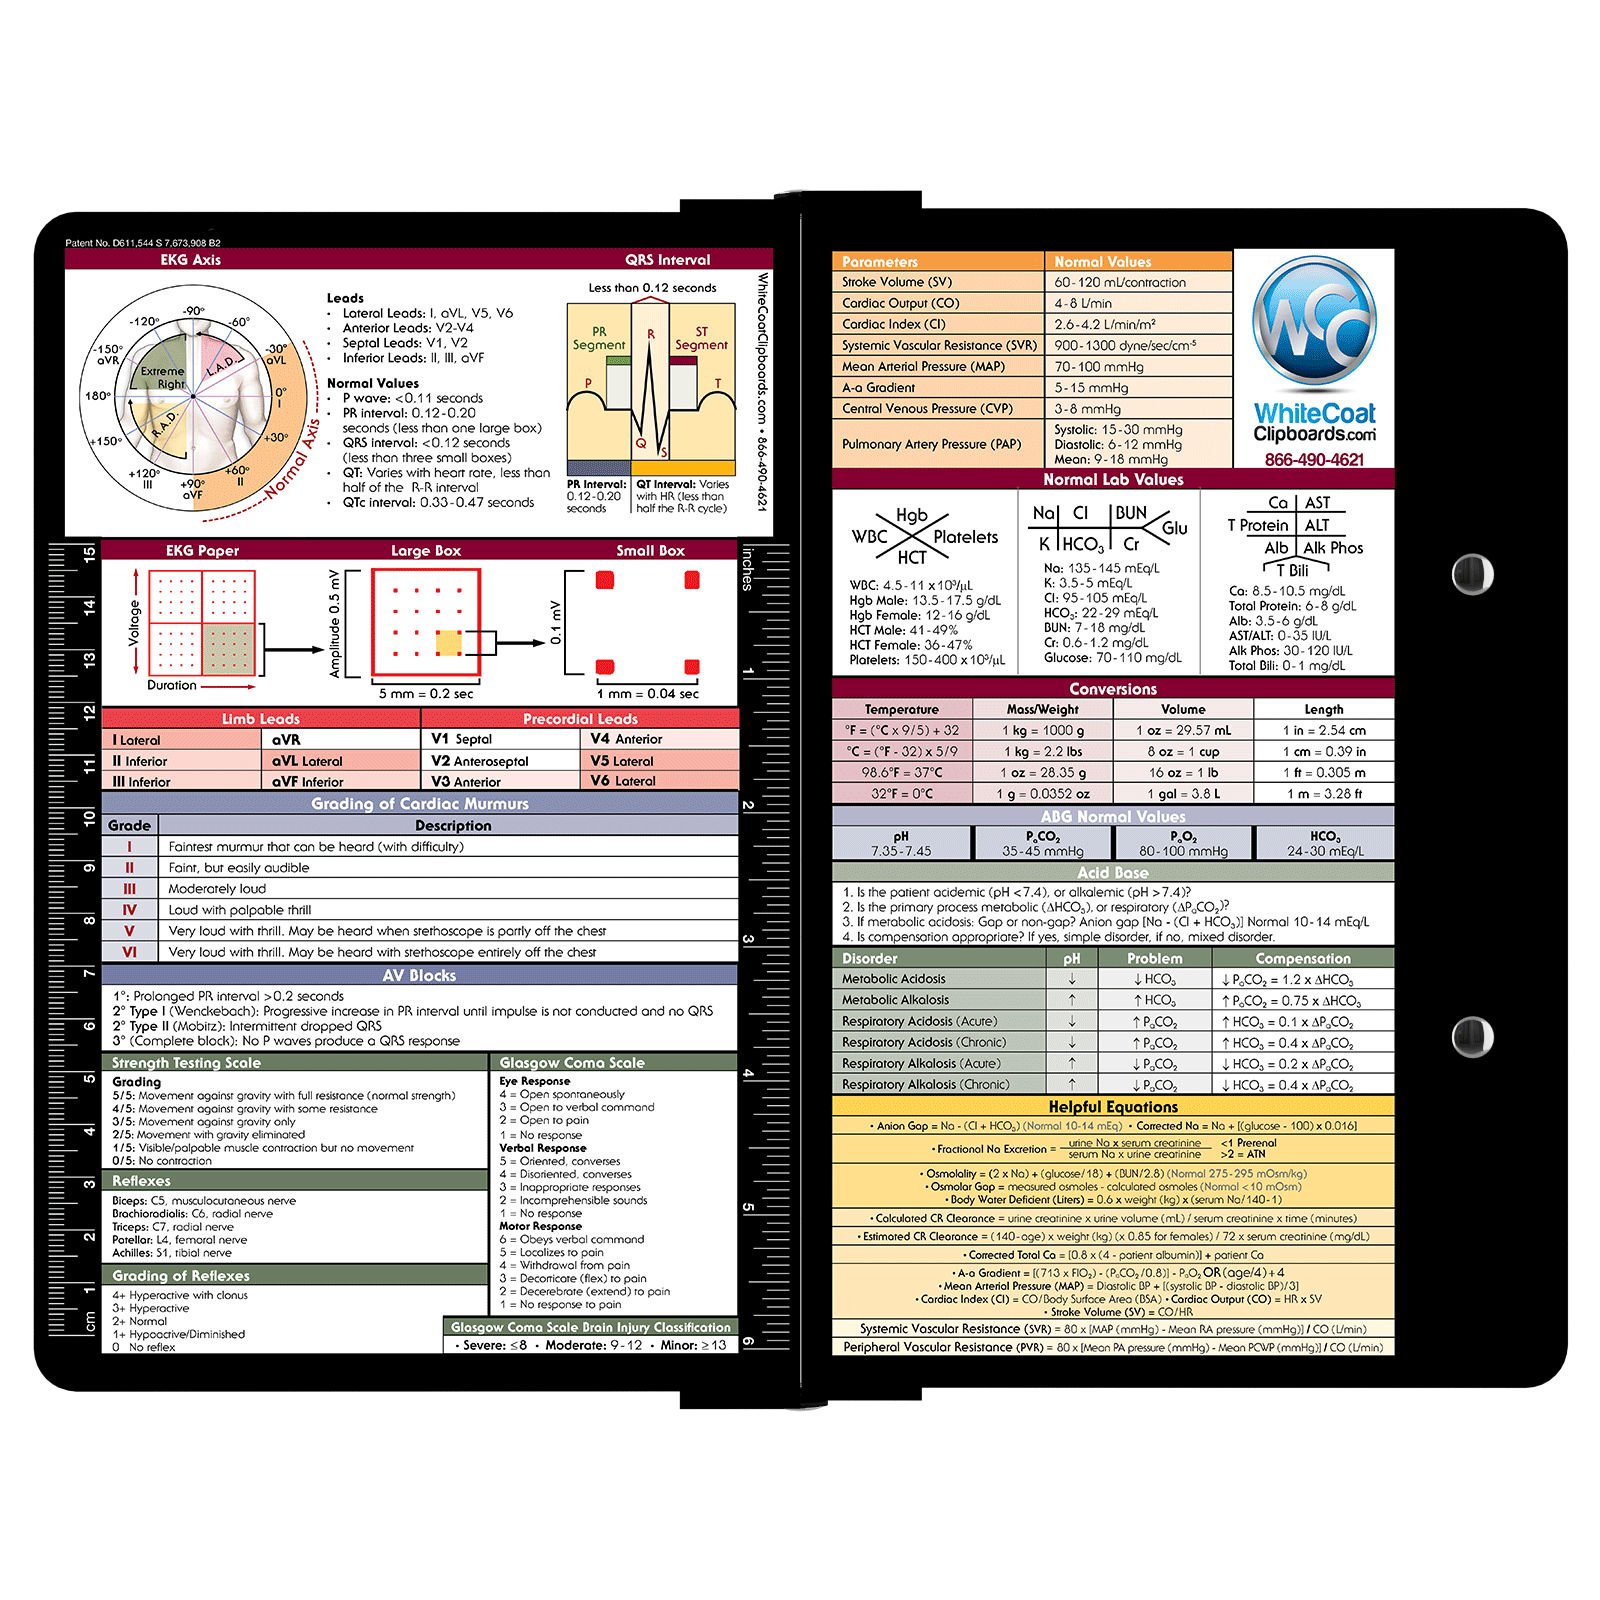 WhiteCoat Clipboard - Medical Edition